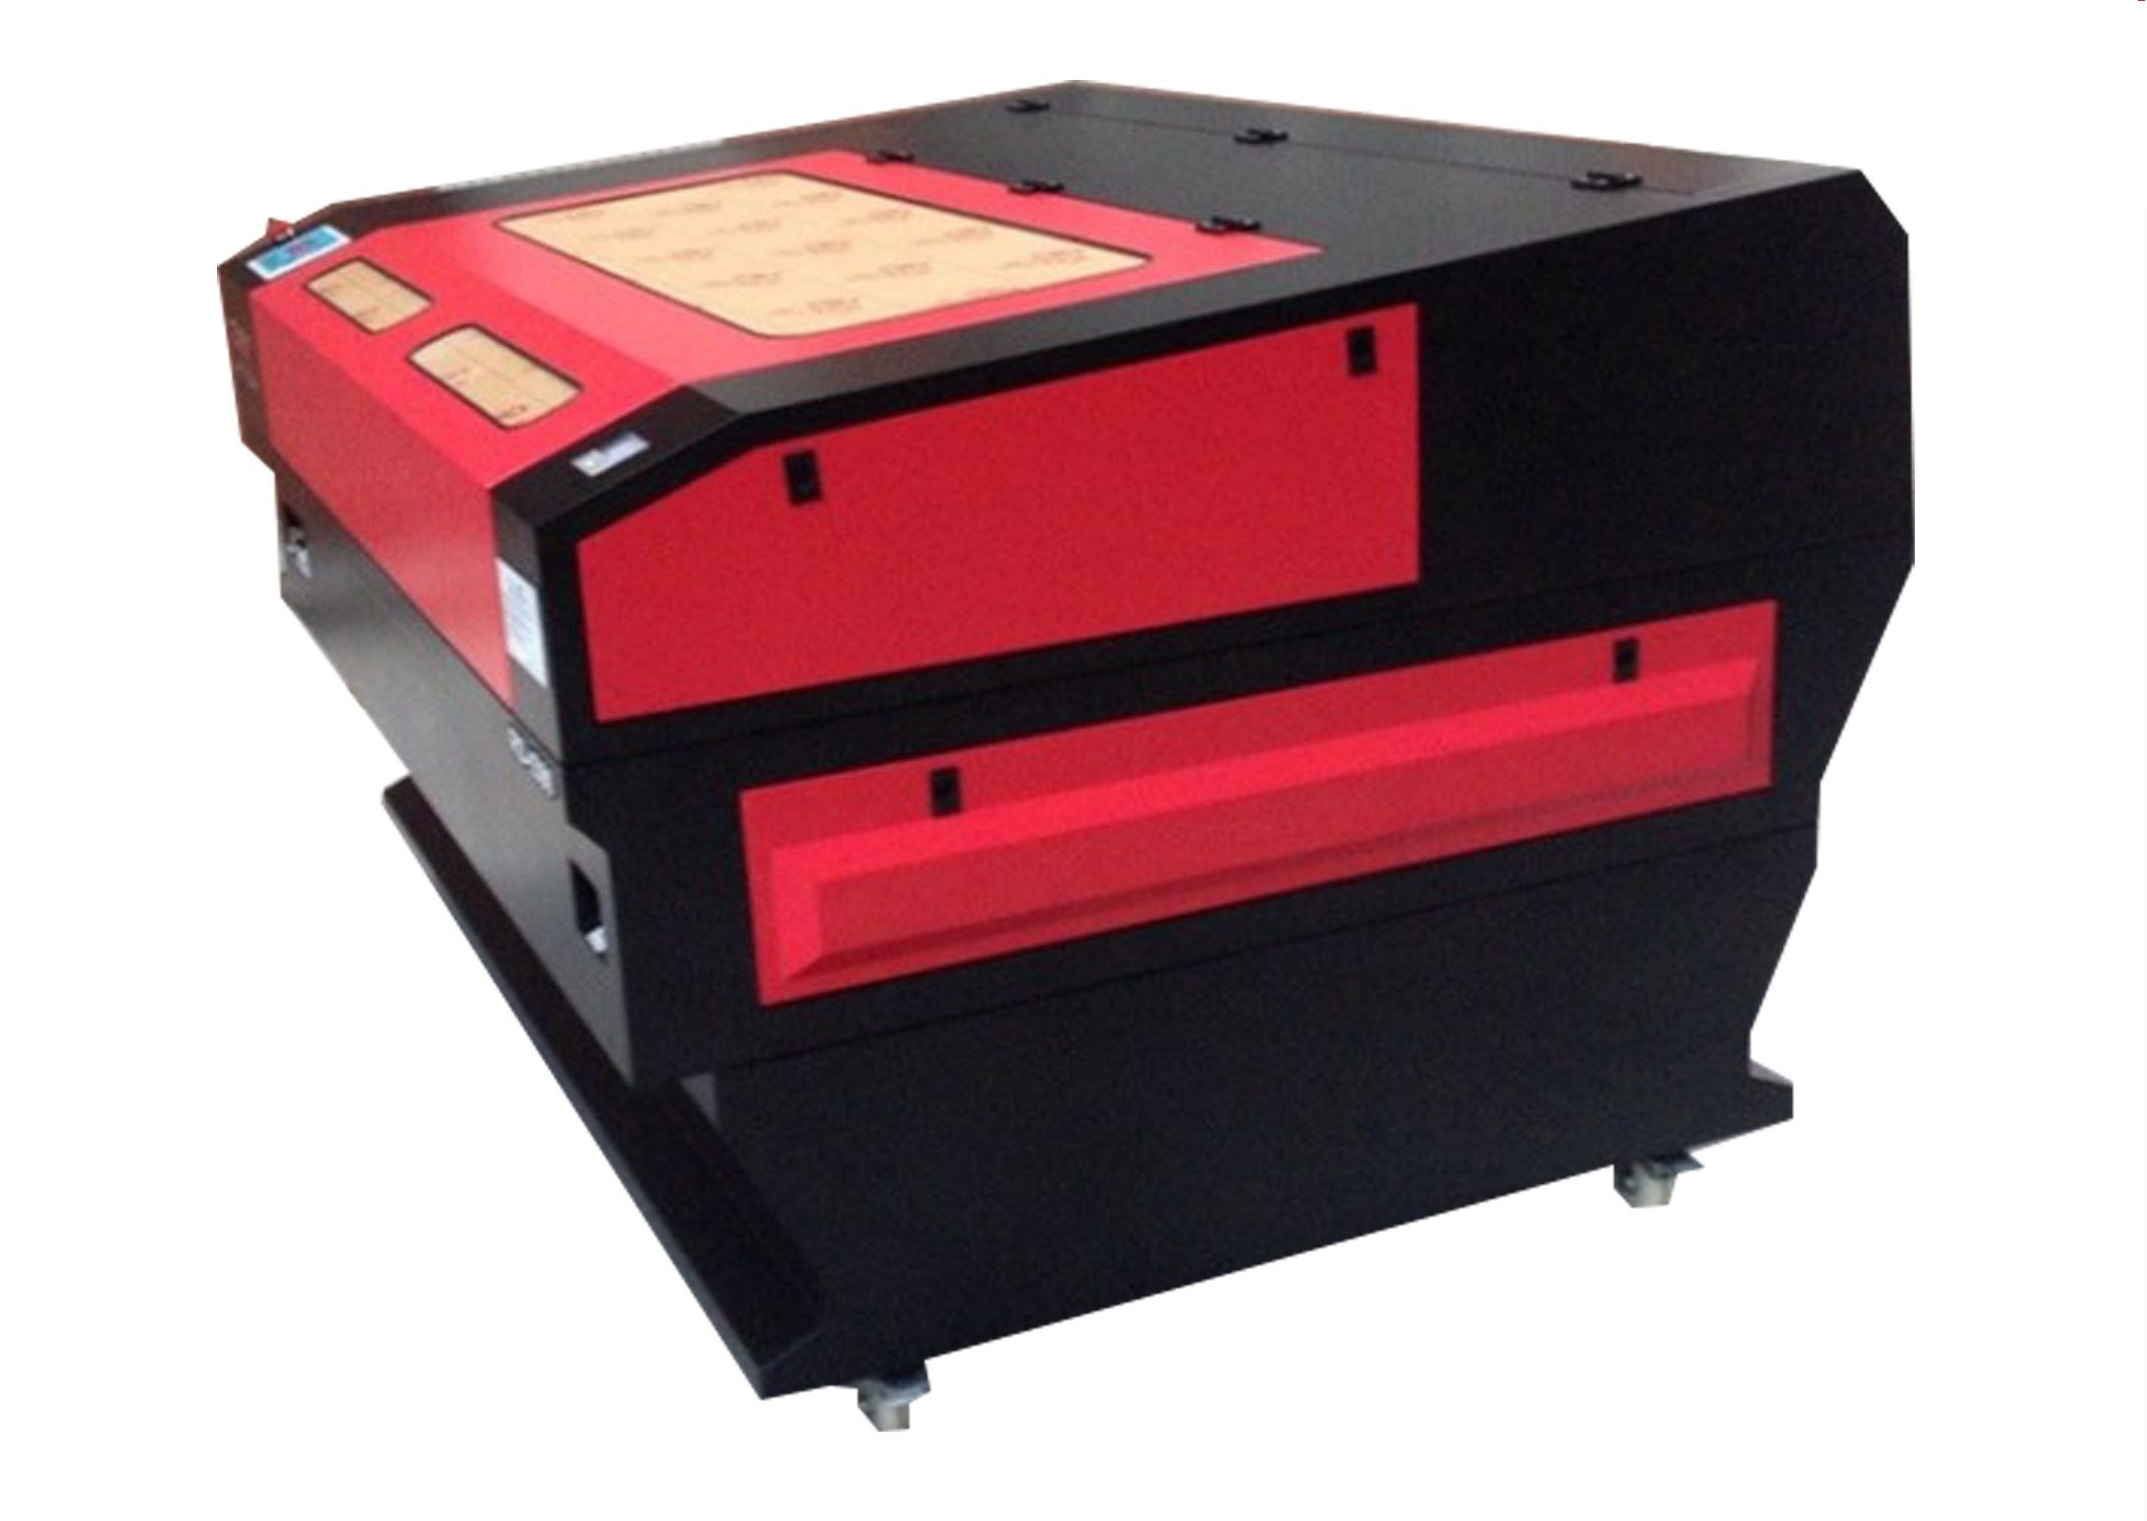 Rd 1300*900 Non-Metal Laser Cutting Equipment / Wood/ Acrylic/ Farbric/ Cloth/Glass/Leather/MDF